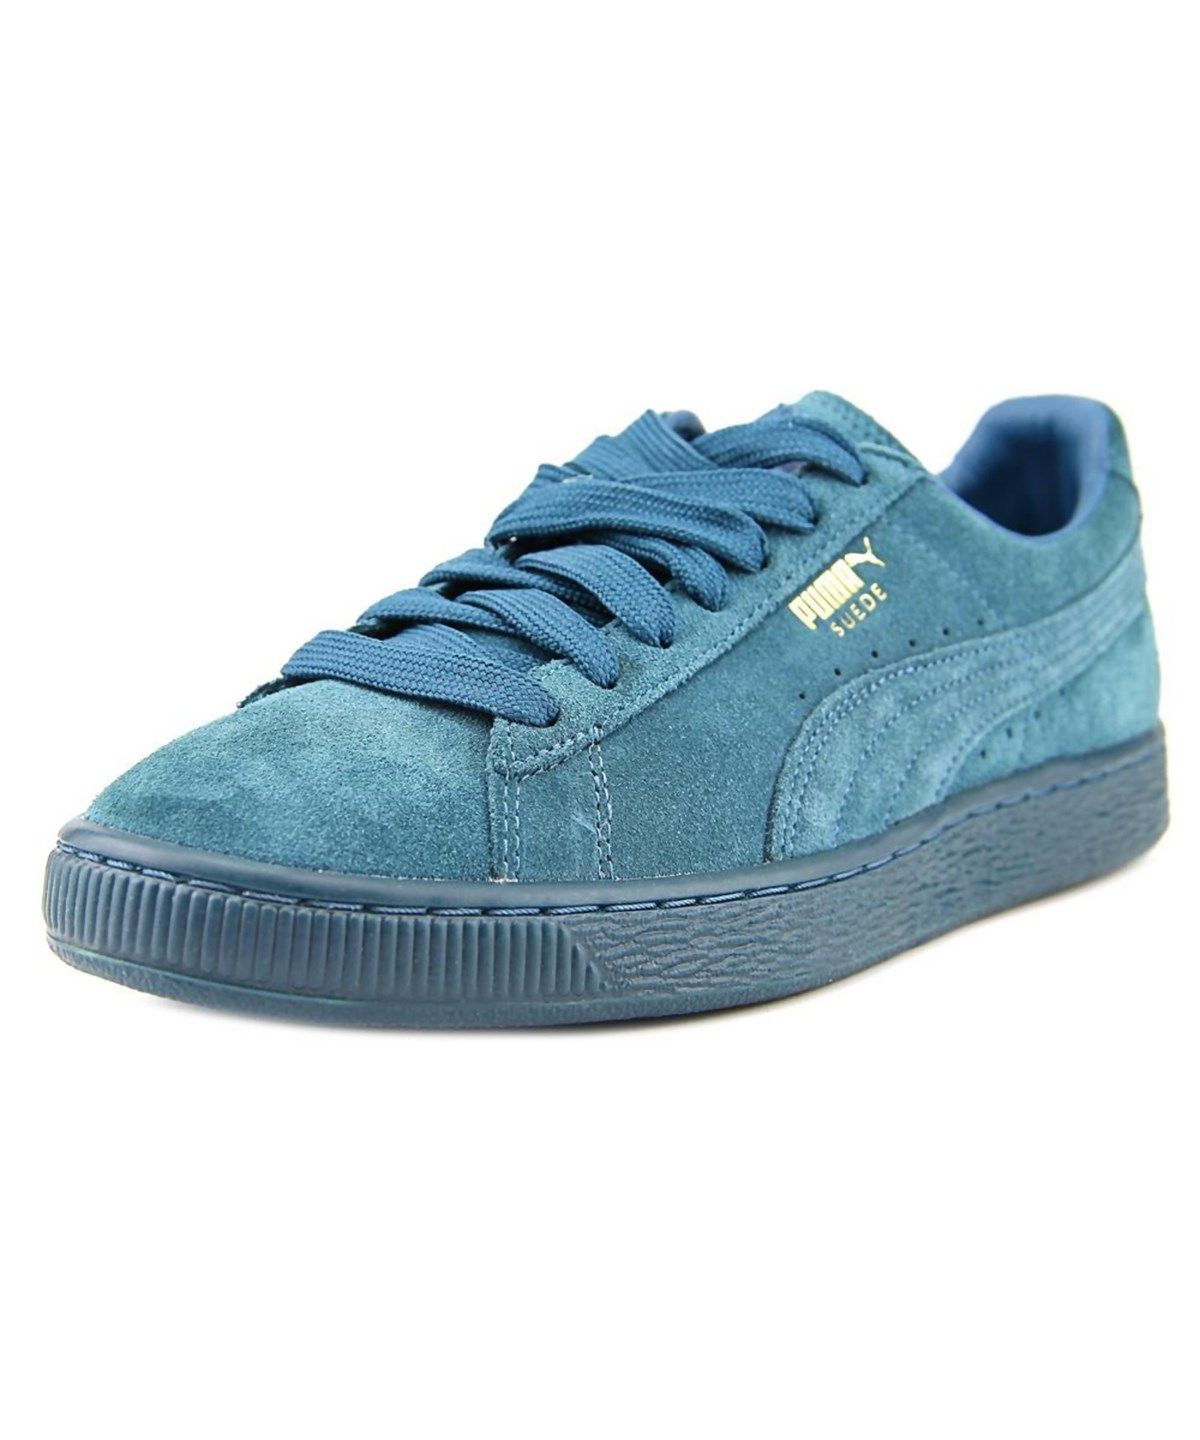 PUMA Men's Suede Classic - Mono Iced Sneaker Blue Coral/Team Gold M: The Puma  Suede Classic + Mono Athletic feature a Suede upper with a Round Toe .